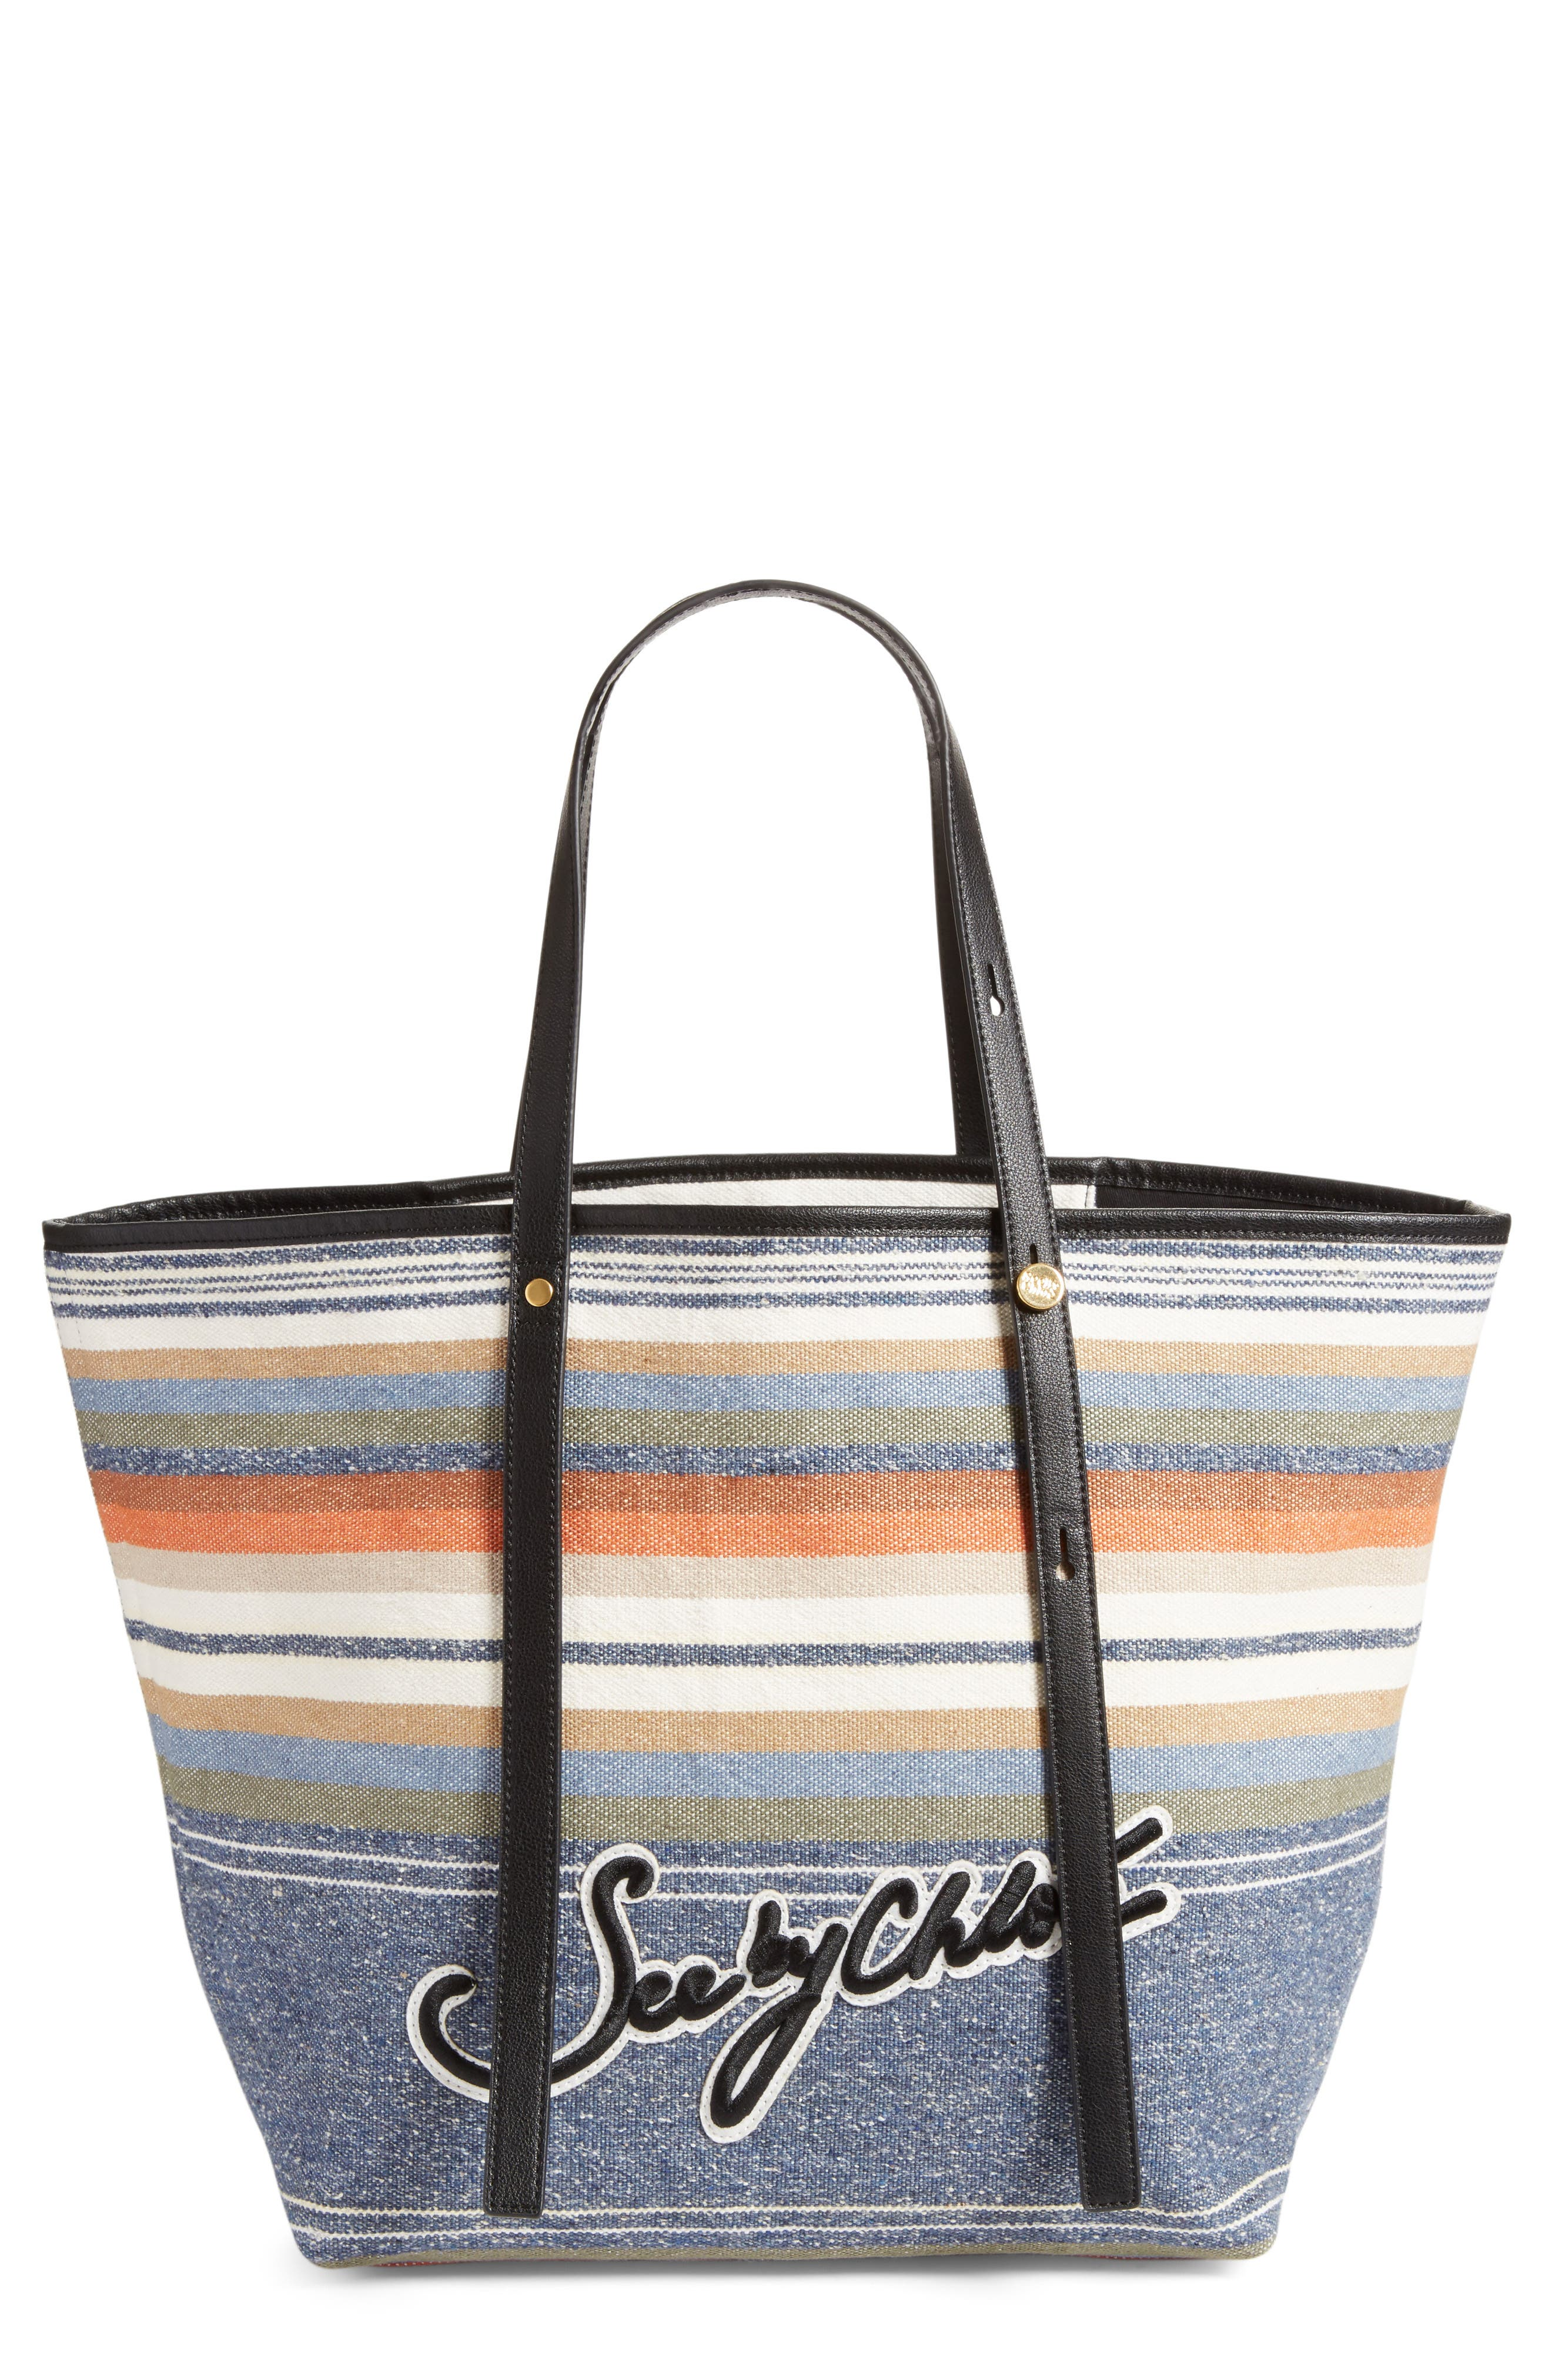 SEE BY CHLOÉ Stripe Canvas Tote